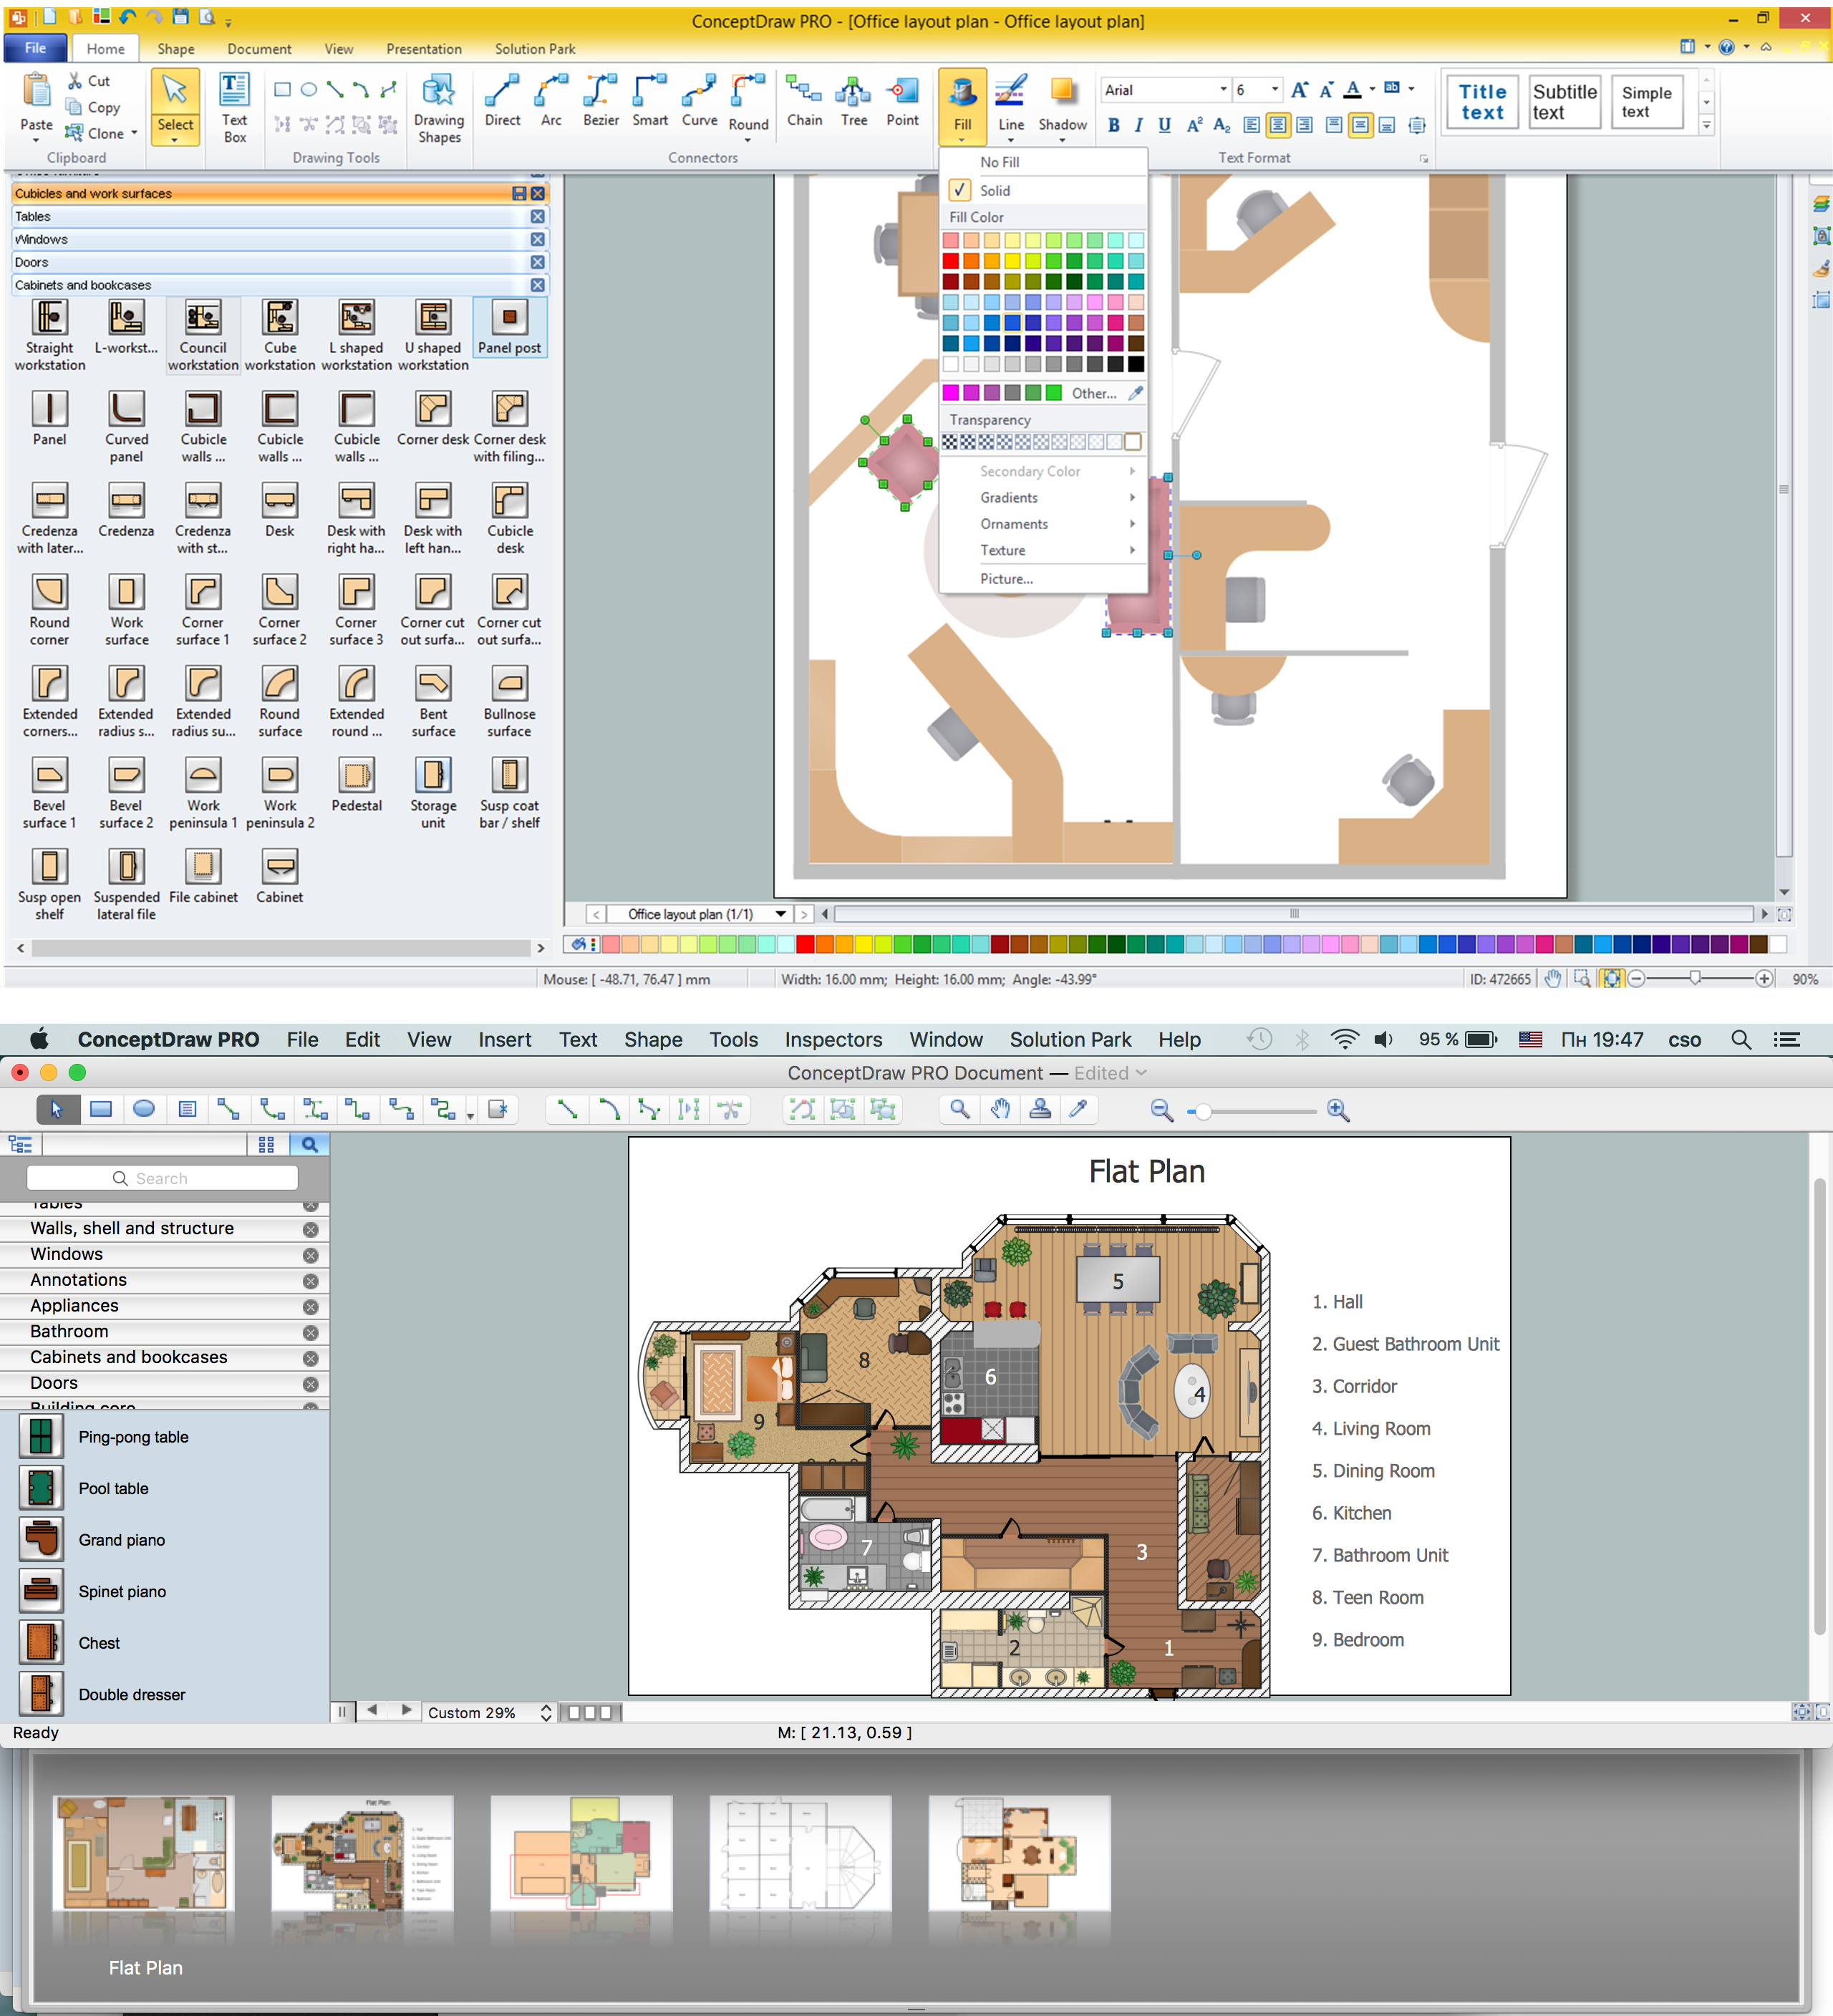 Office layout plans interior design office layout plan for Building layout software